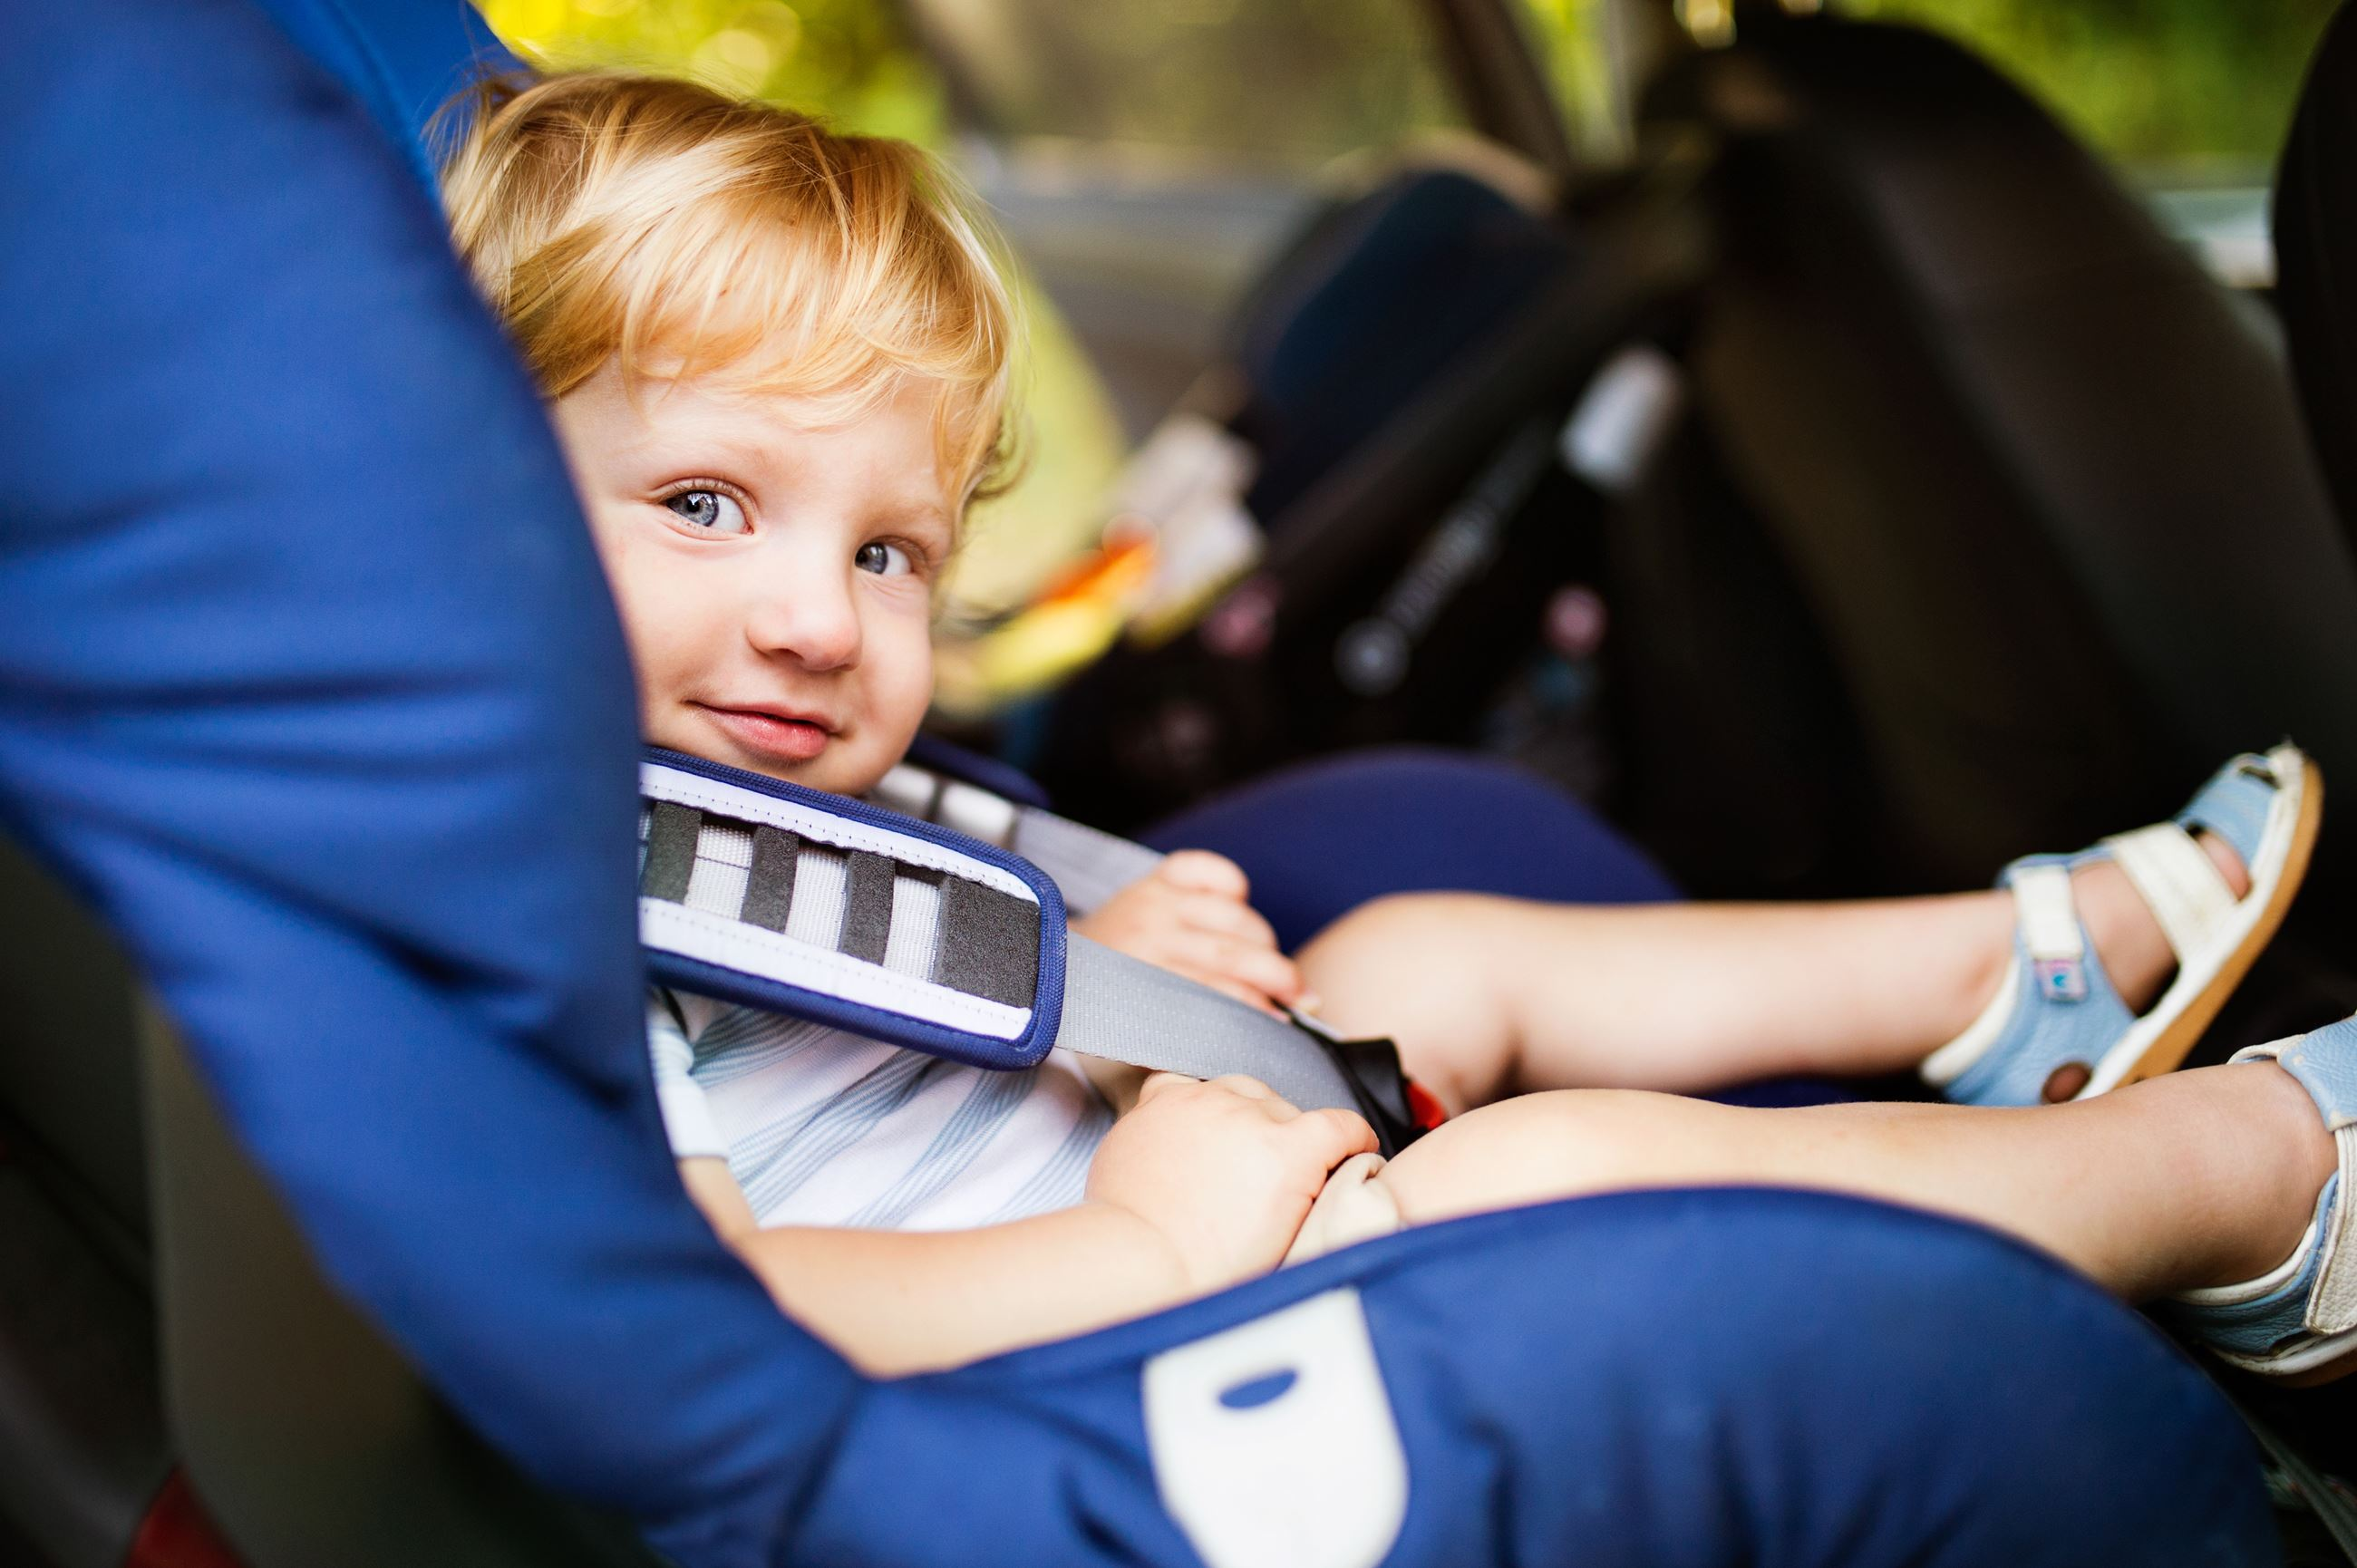 Child Restraint Safety Seat Check